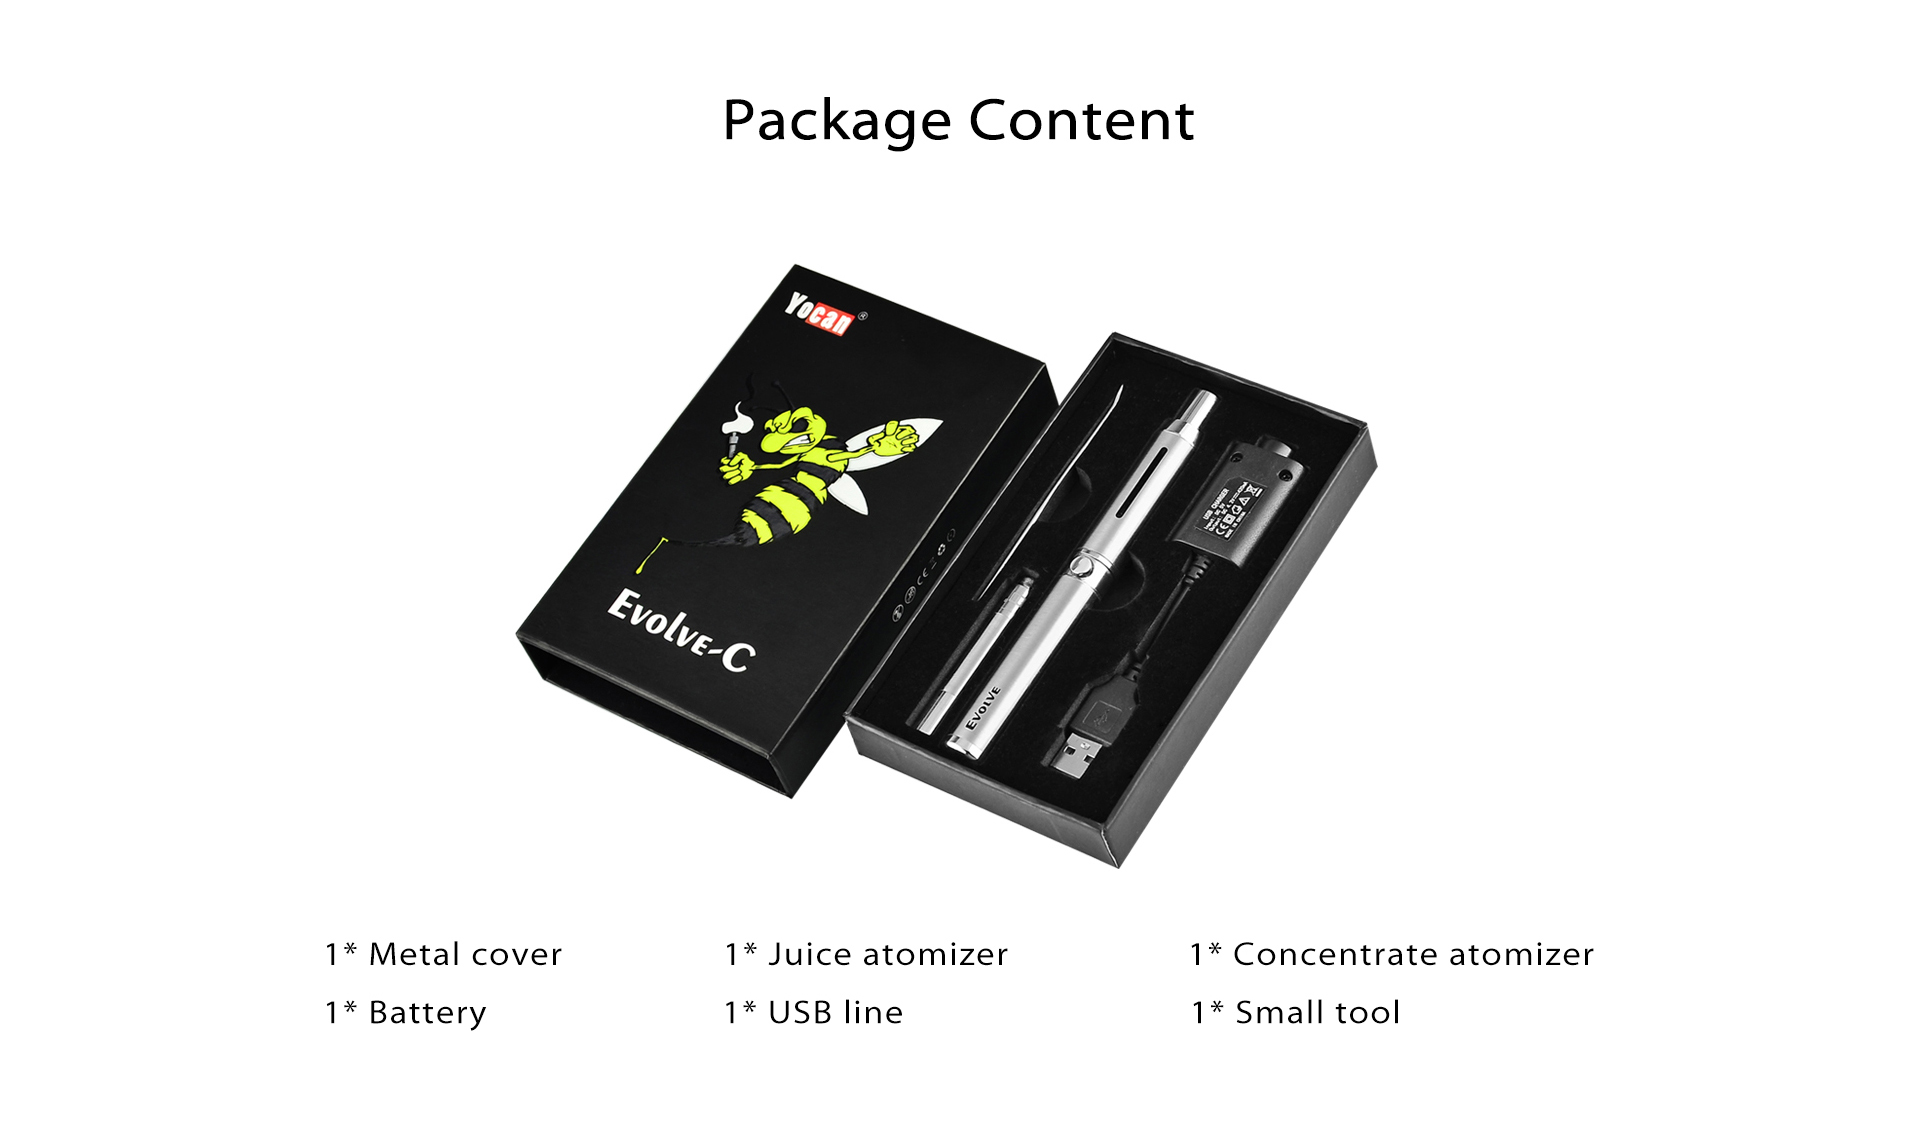 Yocan Evolve C Wax Oil Vaporizer Pen kit package content.